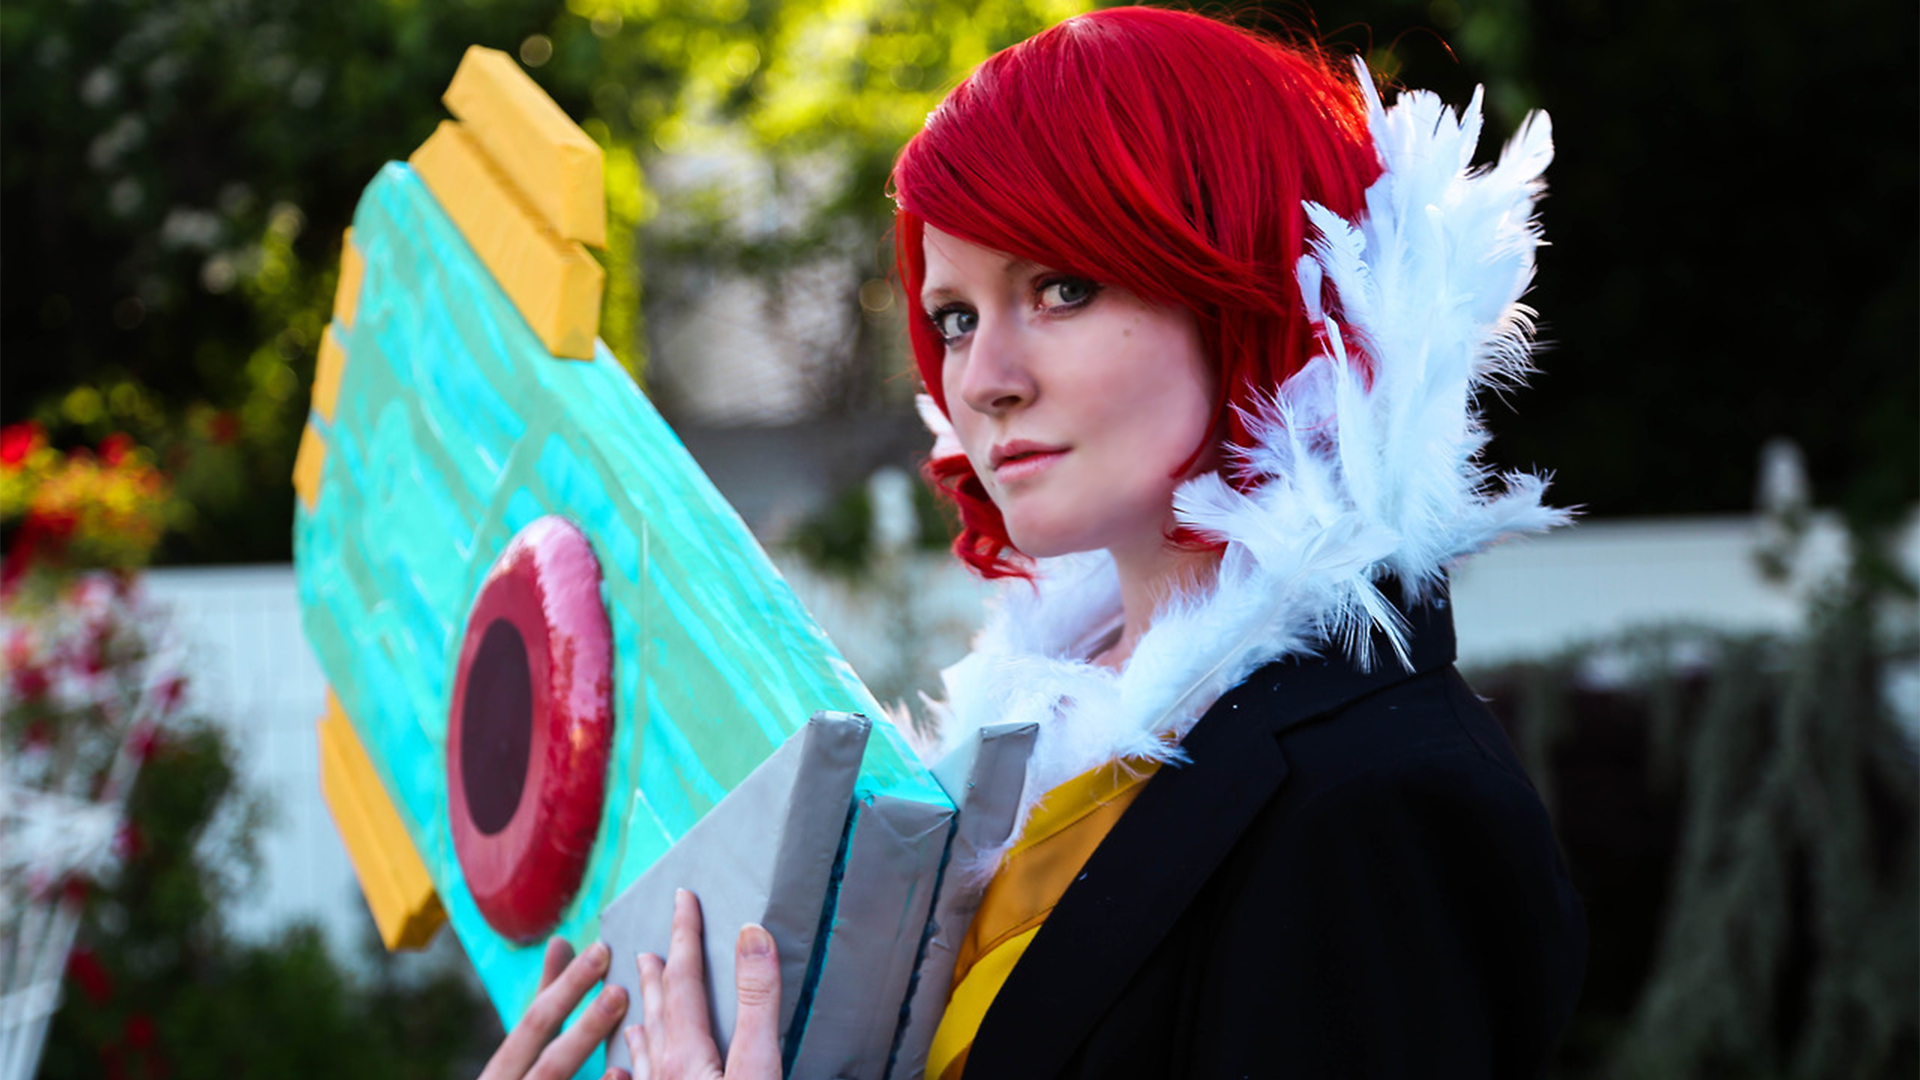 Transistor Game Cosplay - PS'd Wallpaper by Troypc on DeviantArt